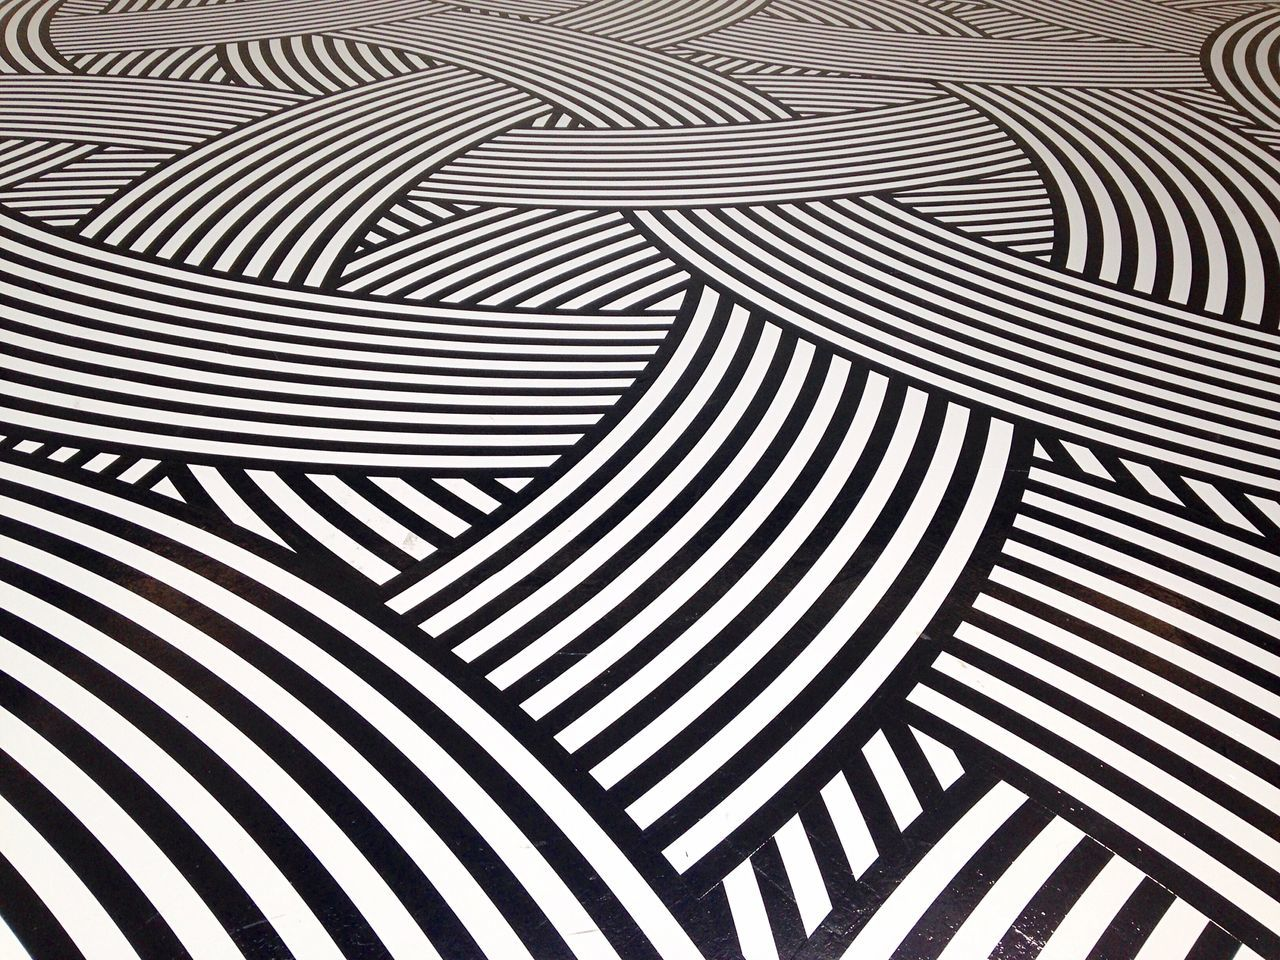 Black And White Pattern, Texture, Shape And Form Lines And Shapes Floortraits